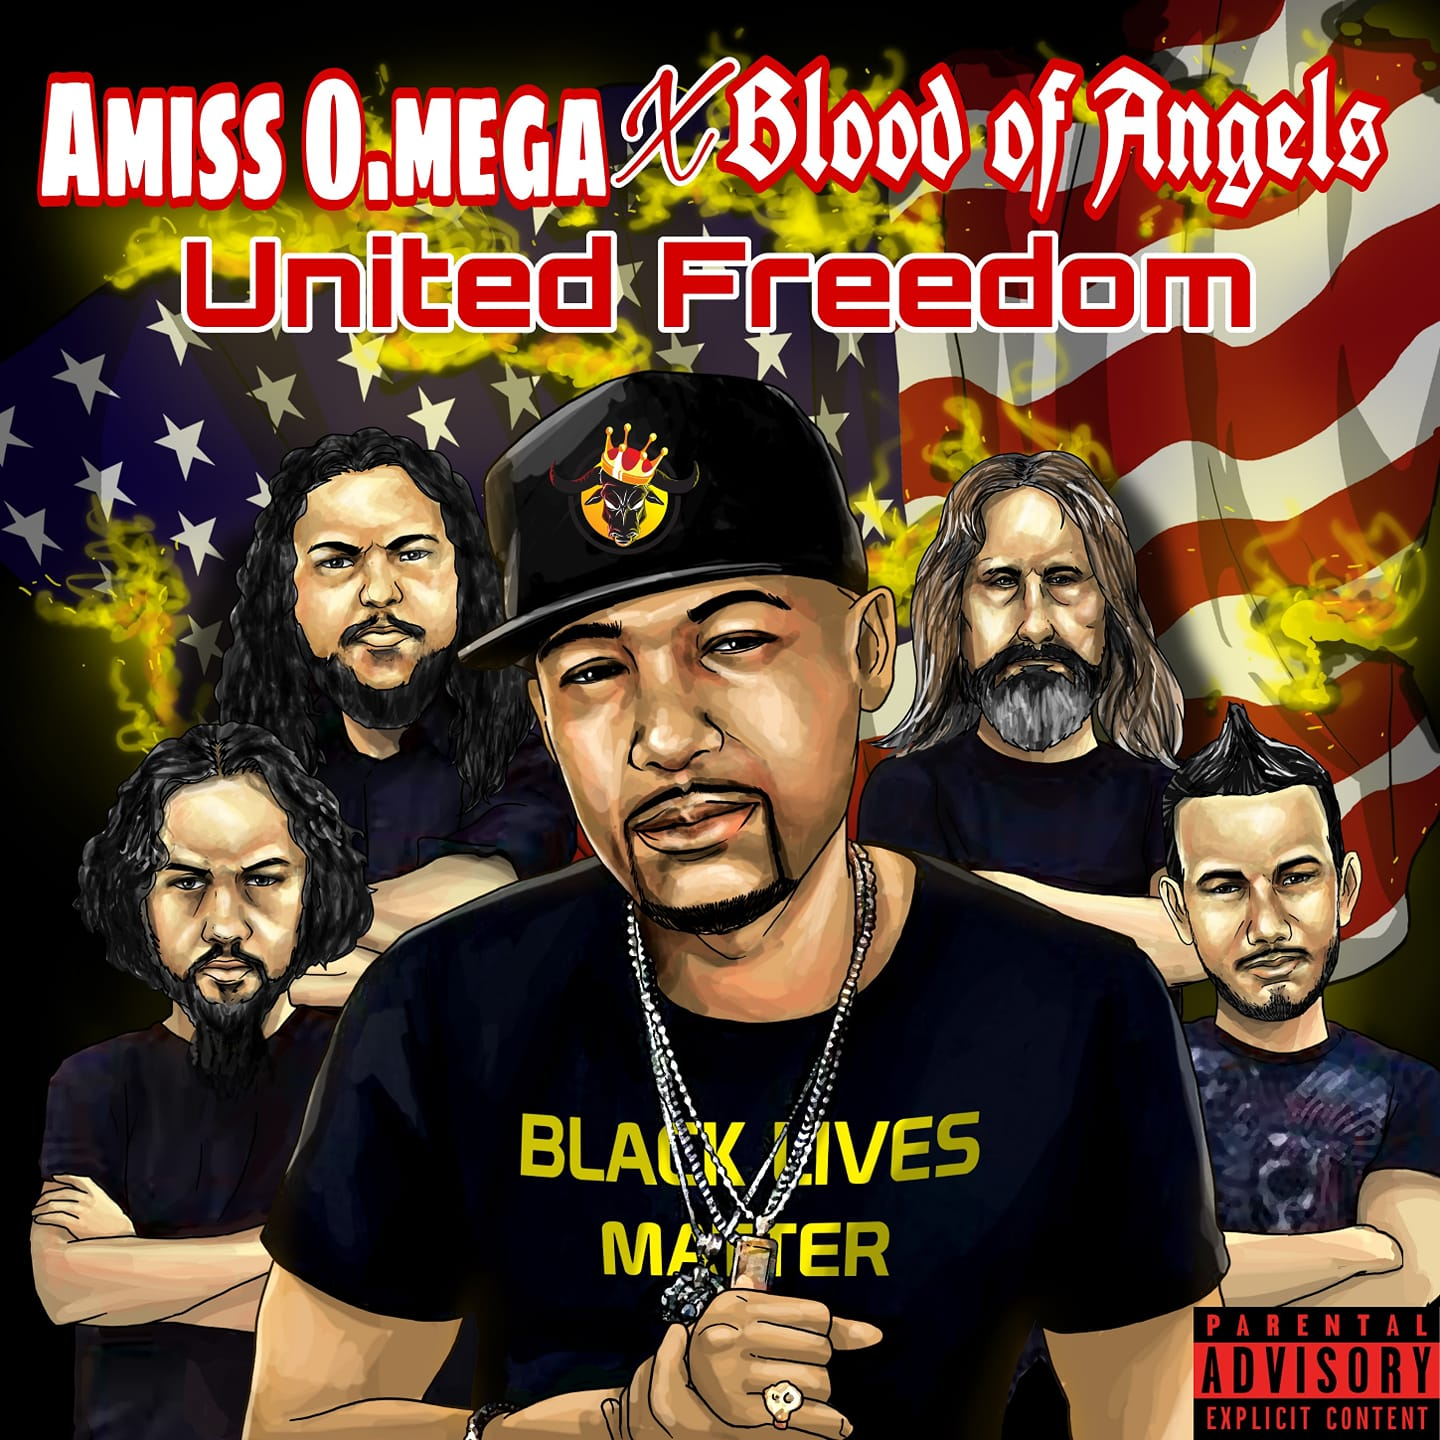 Blood of Angels & Hip-Hop Artist Amiss O.Mega collaborate for the song 'United Freedom'